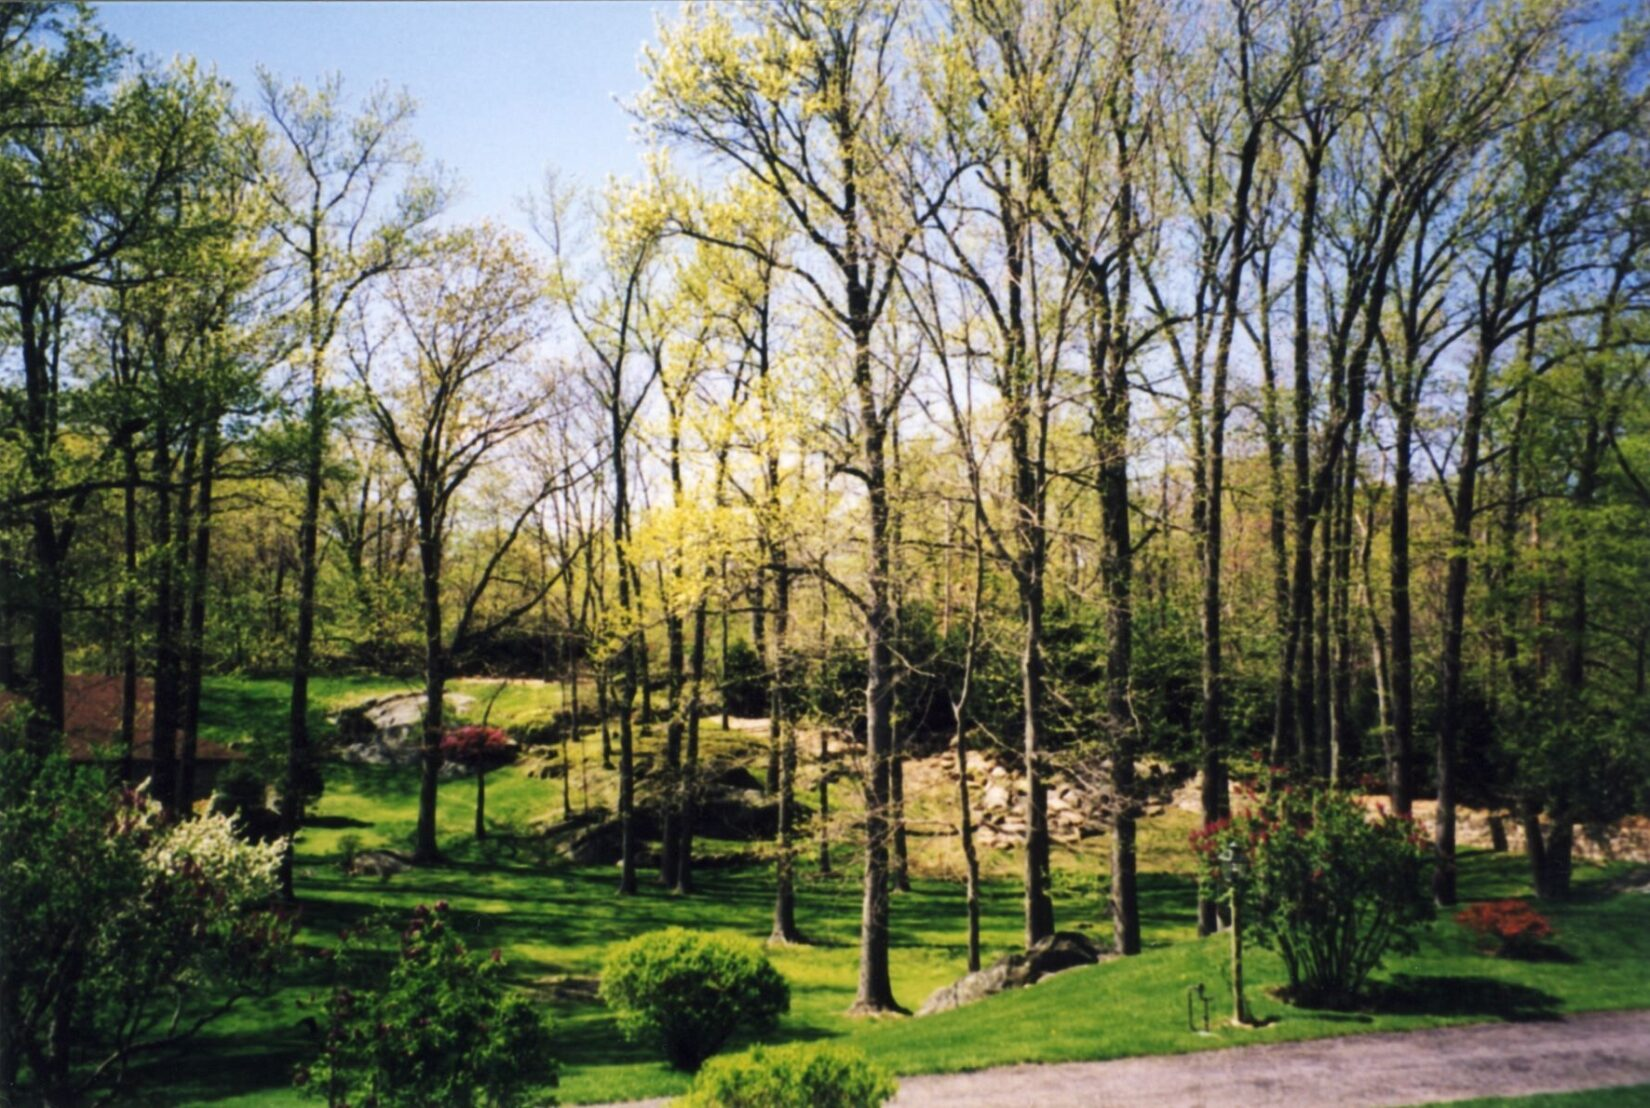 A well-tended landscape of lawn, outcroppings, and trees